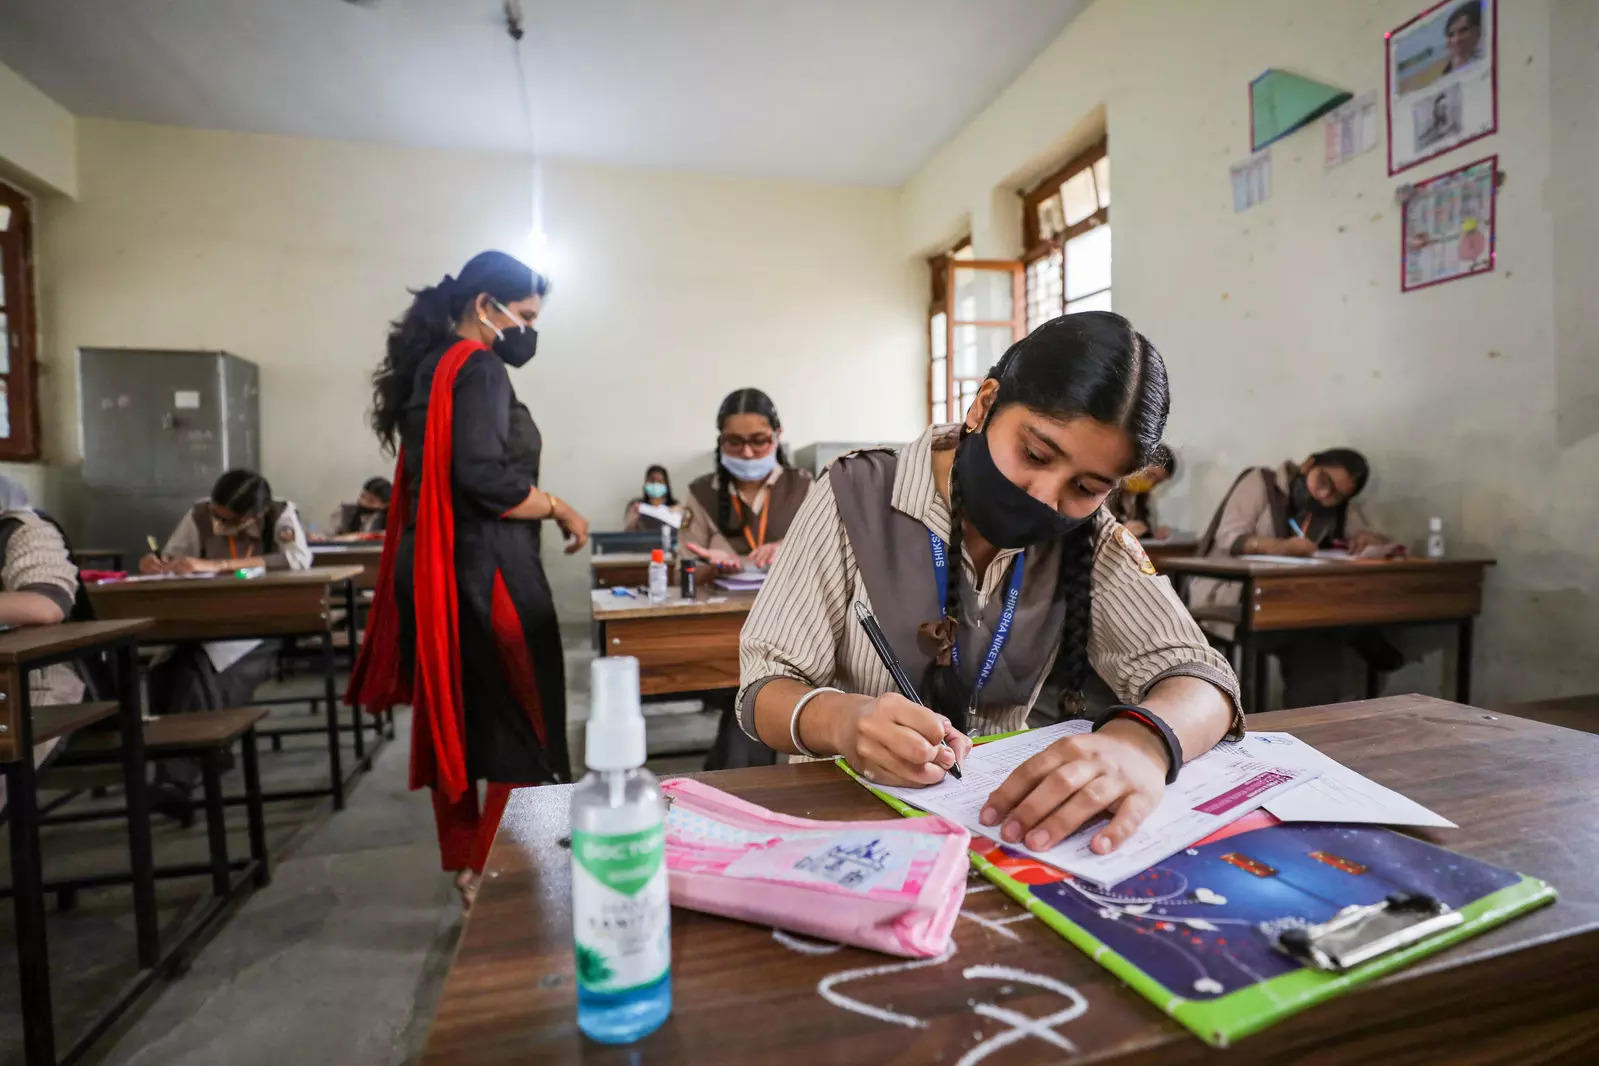 Boards 2021: Punjab Board releases class X results, 99.93% students pass